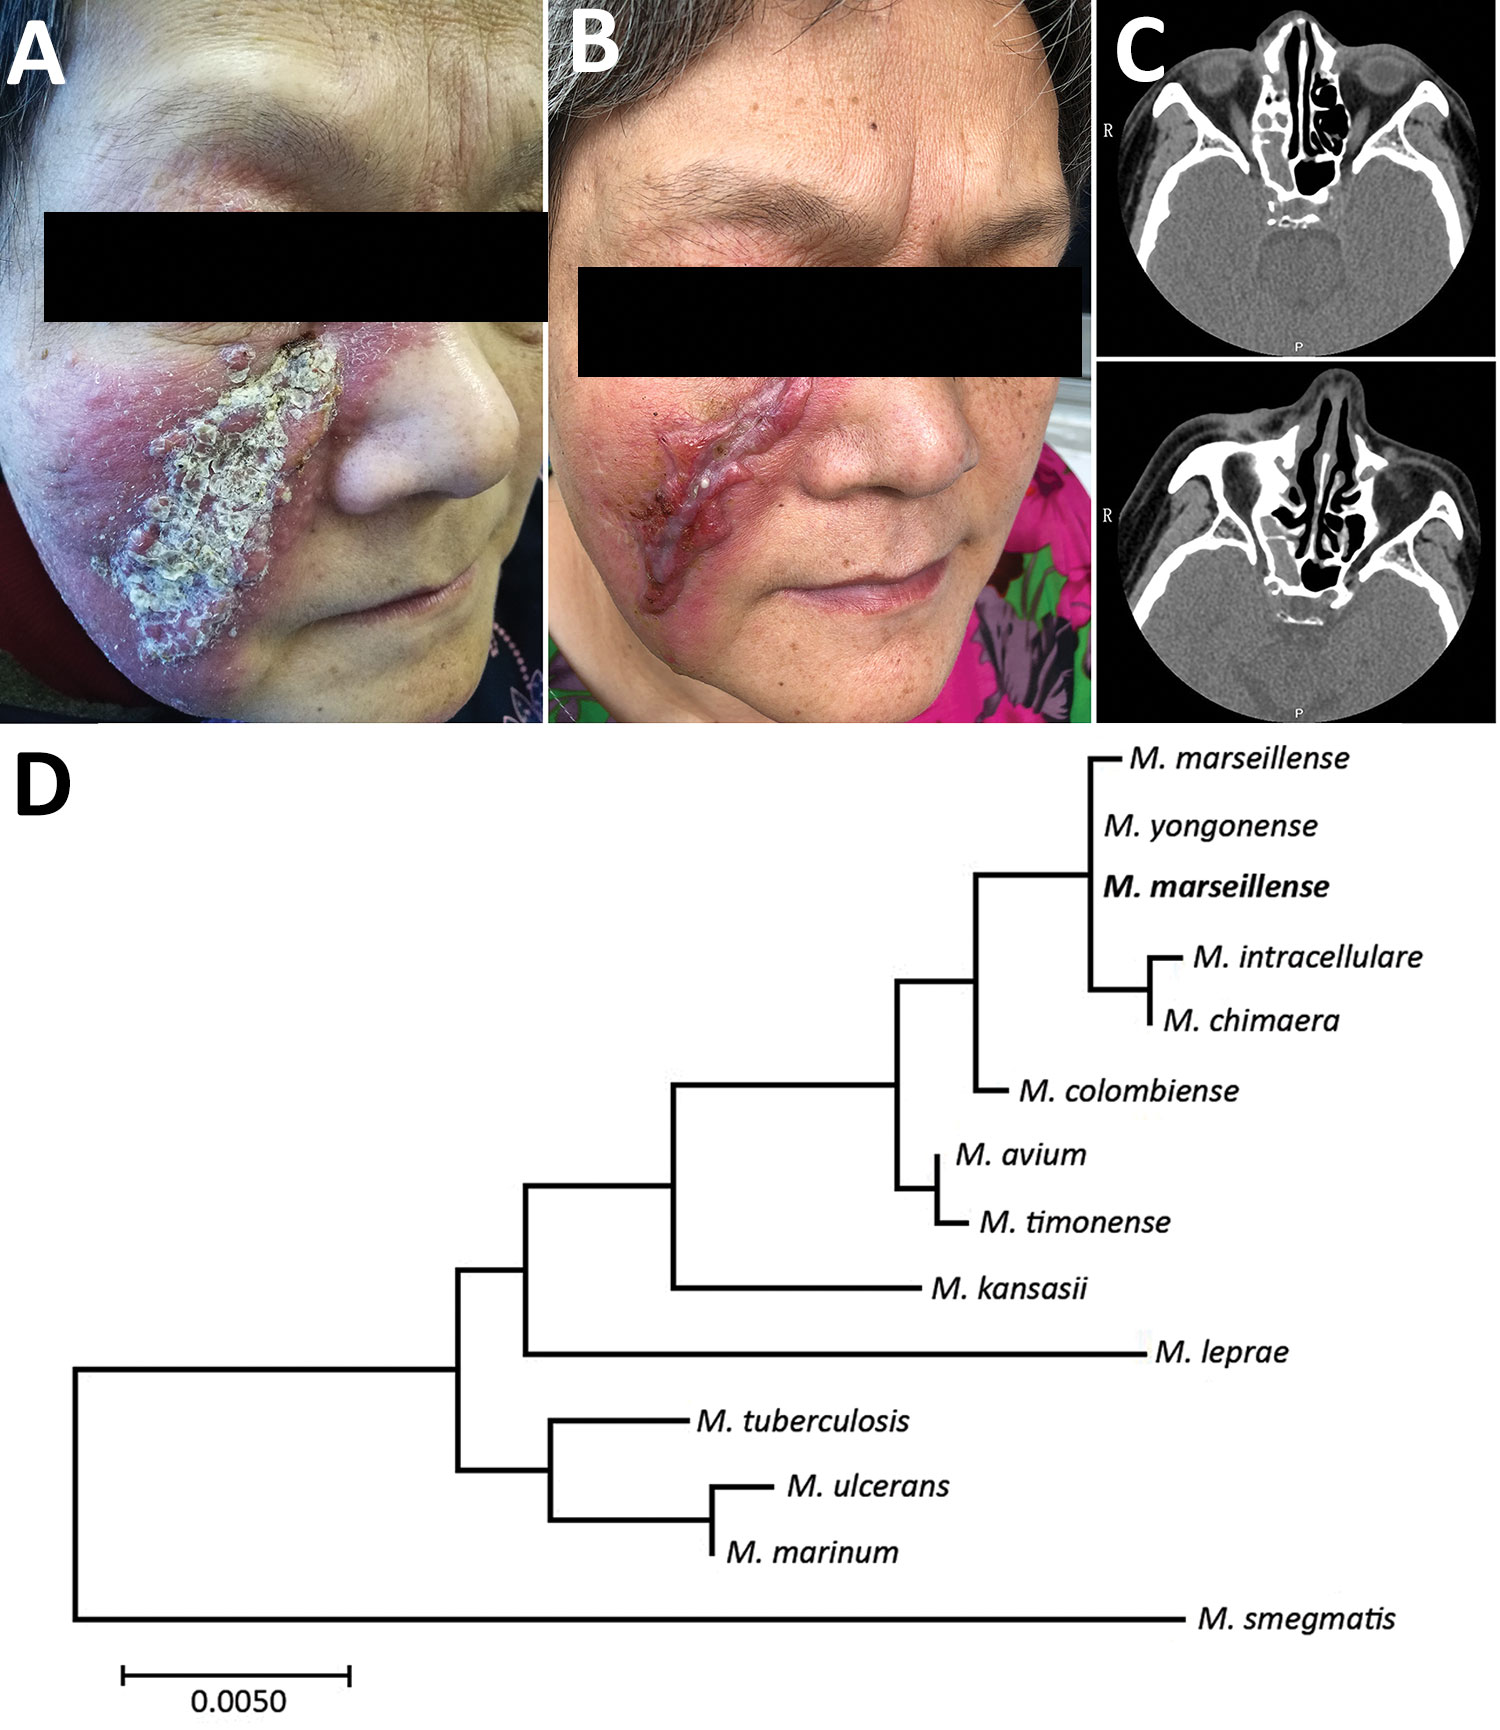 Skin lesions and computer tomography scans of woman with Mycobacterium marseillense skin infection, China, 2018, and genomic analysis of isolate. A, B) Facial skin lesion of woman with M. marseillense infection before and after treatment. Infiltrated erythematous plaque with yellowish scales and crusts (A) resolved to a scar after clearance of infection (B). C) Computed tomography imaging before treatment (top) shows heterogeneous hypersignal in right ethmoid sinus and after treatment (bottom) s